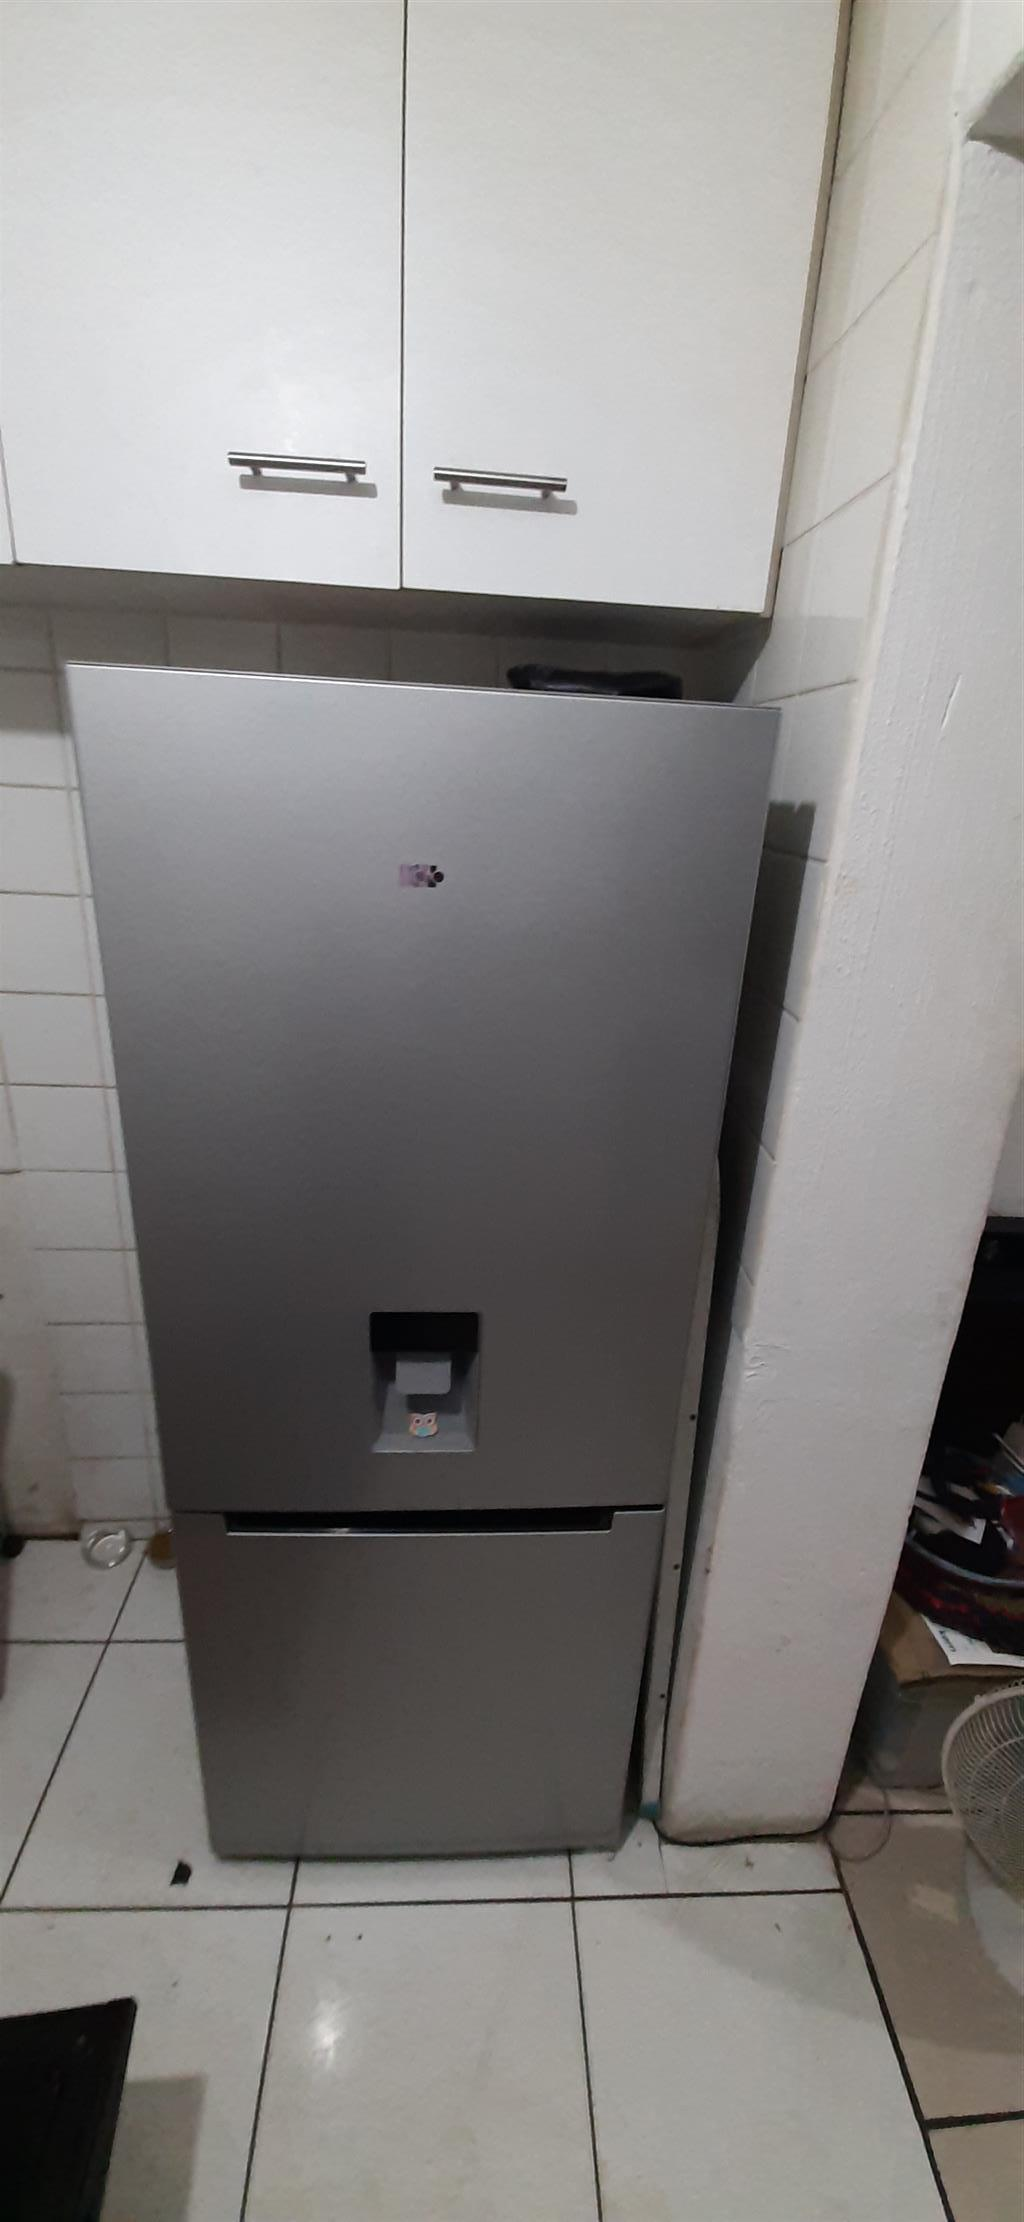 Kic fridge 1 and half year old excellent working condition